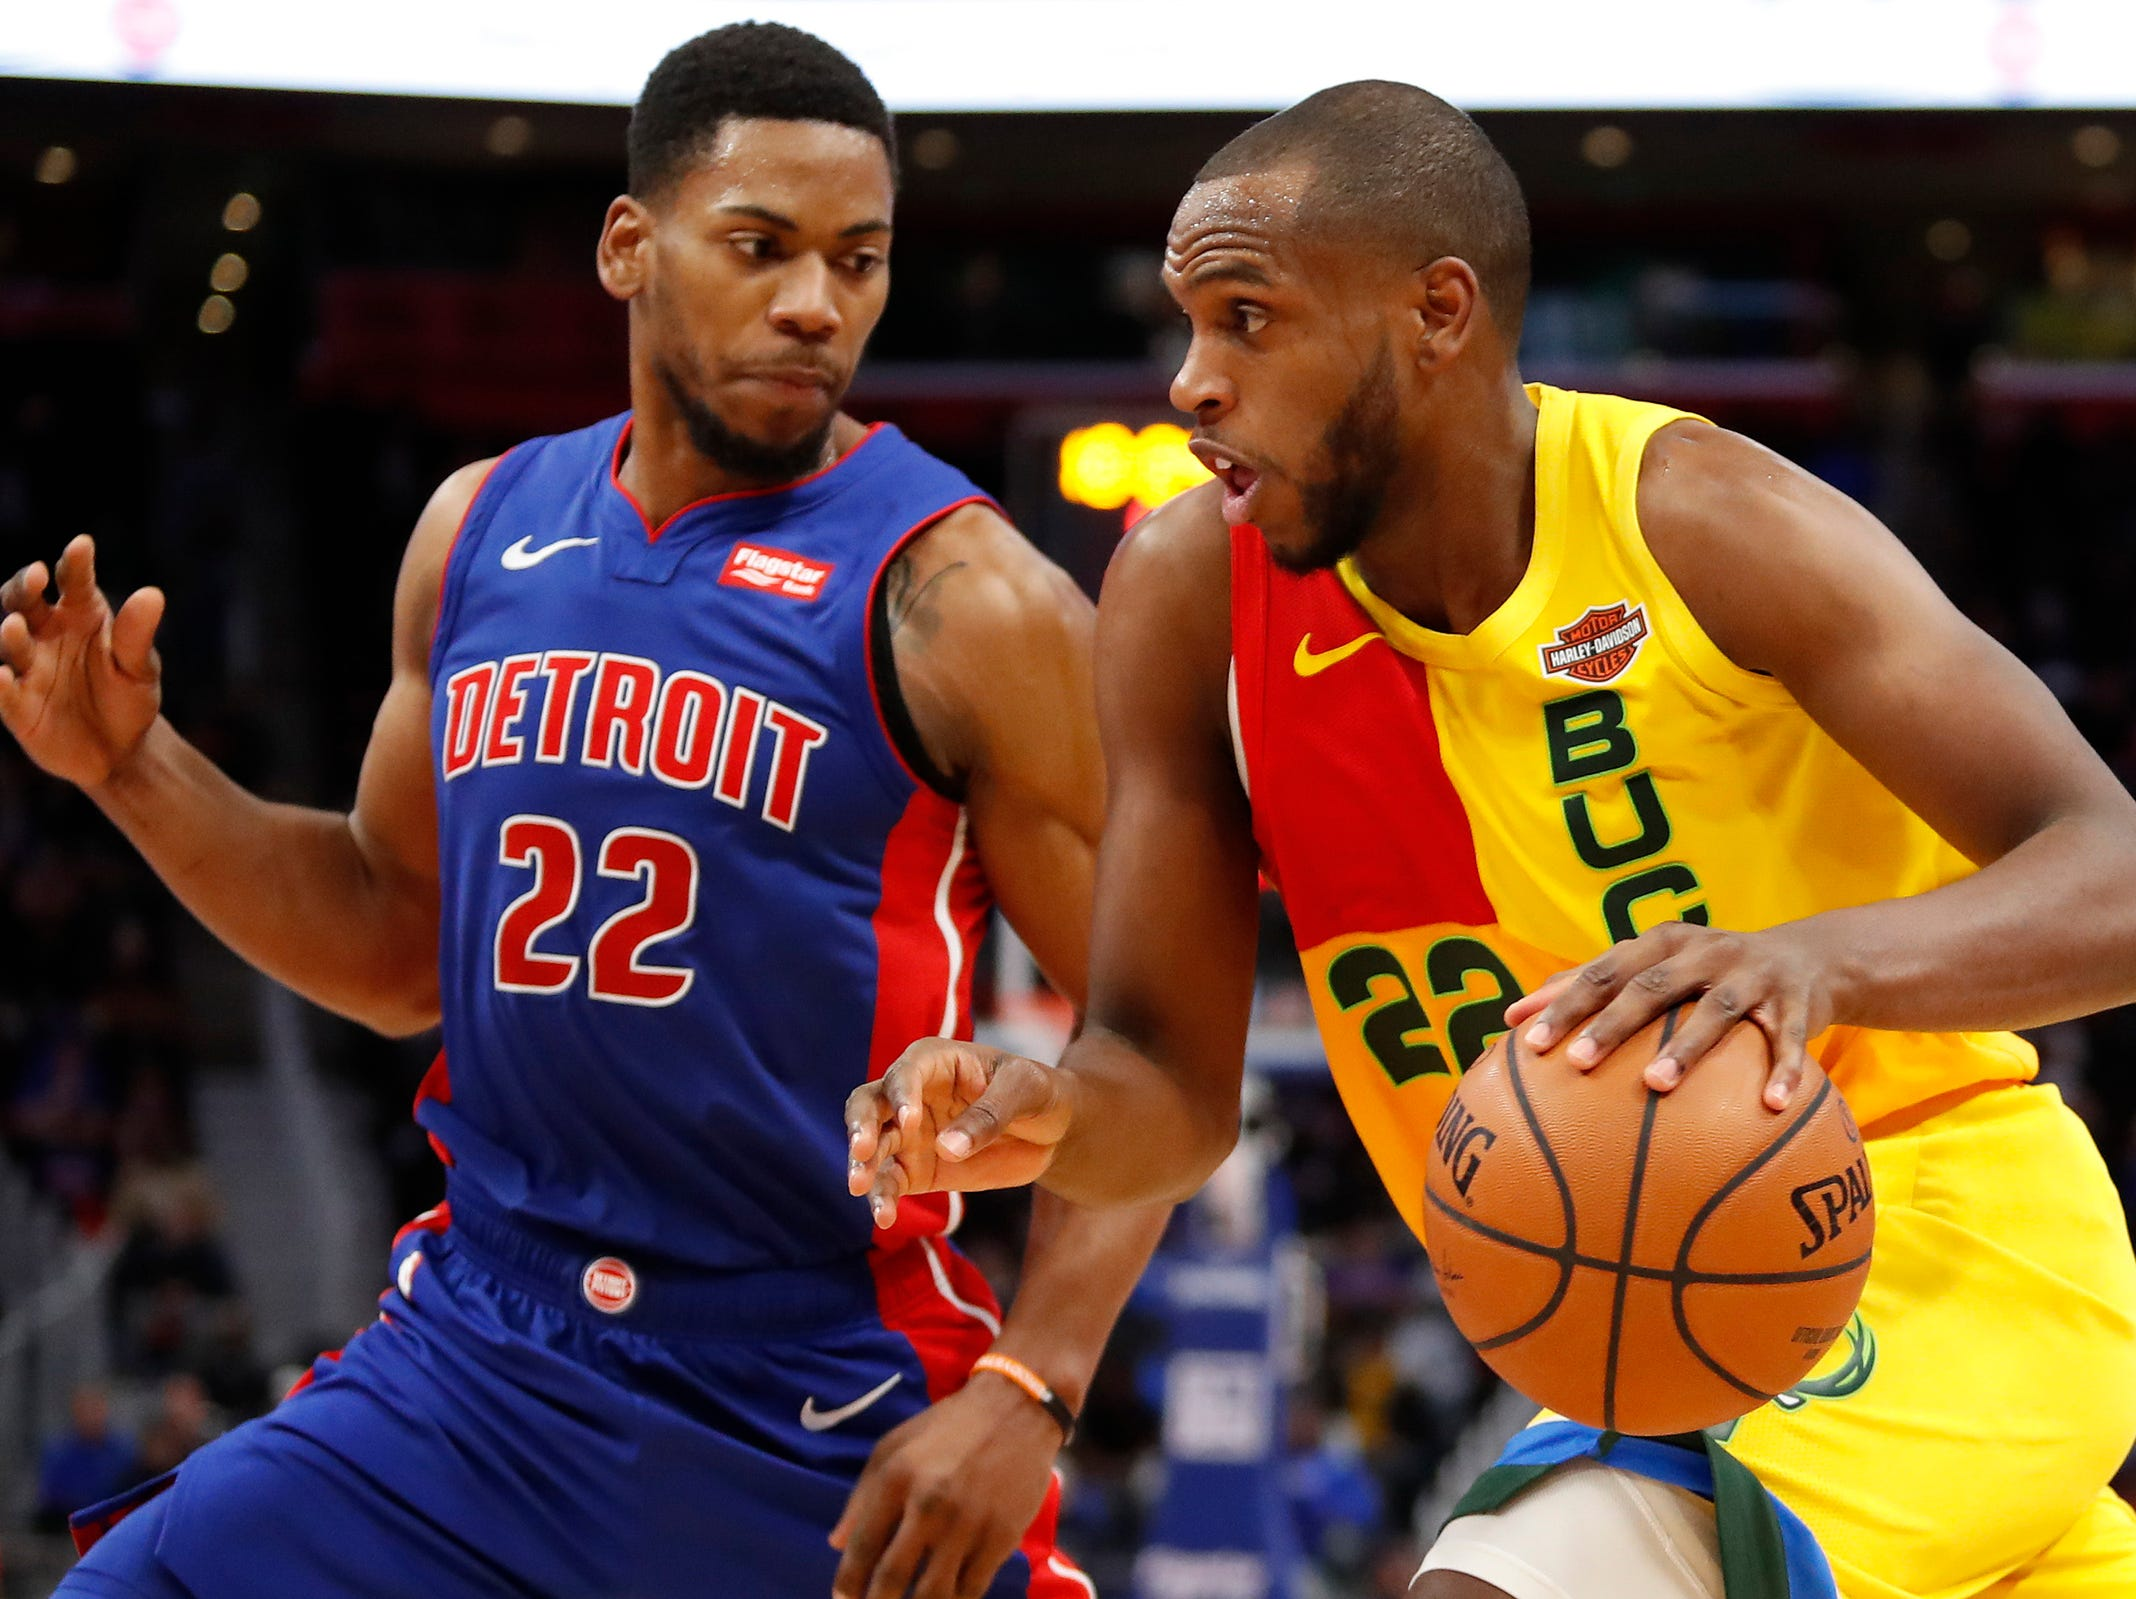 Bucks forward Khris Middleton dribbles the ball as Pistons guard Glenn Robinson III defends during the third quarter of the Pistons' 115-105 loss on Tuesday, Jan. 29, 2019, at Little Caesars Arena.